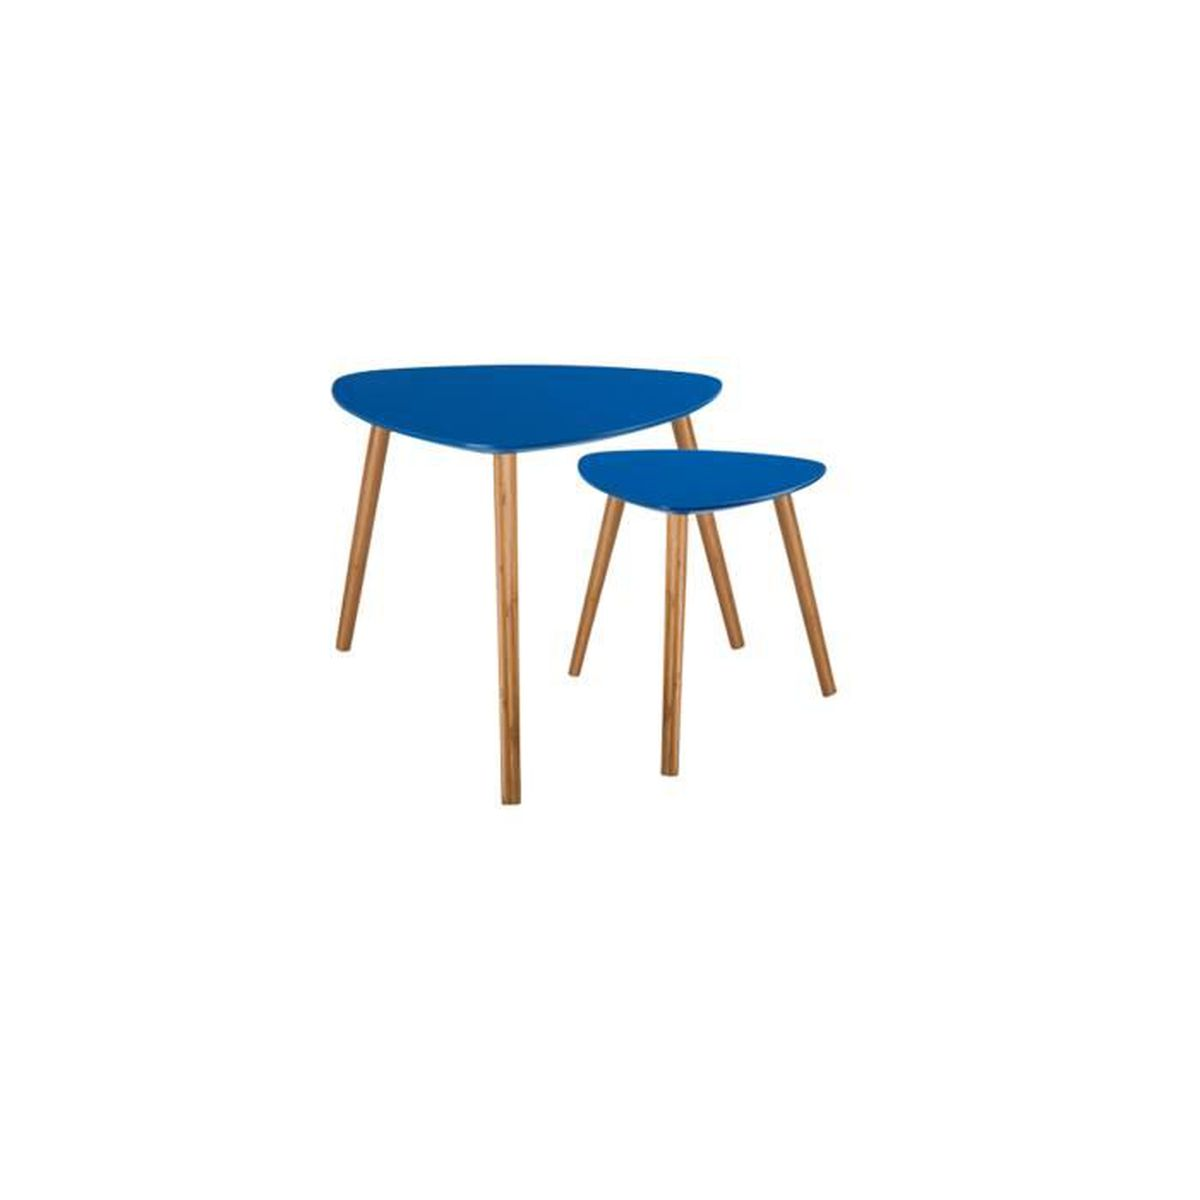 Table basse scandinave bleu fonc lot de 2 achat for 2 table basse scandinave